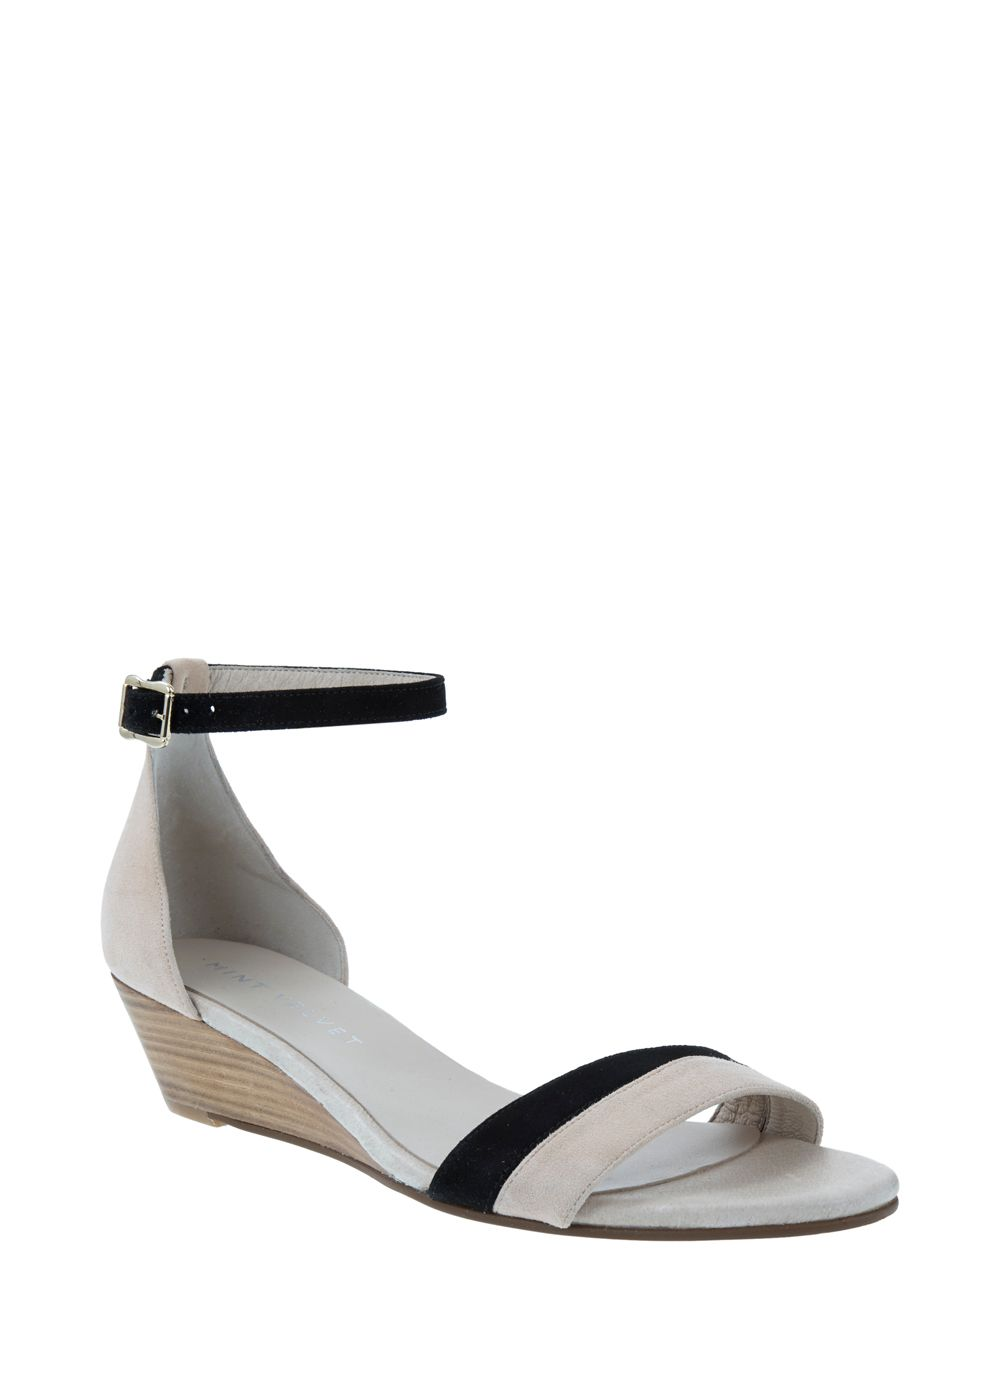 Nude & black livia wedge